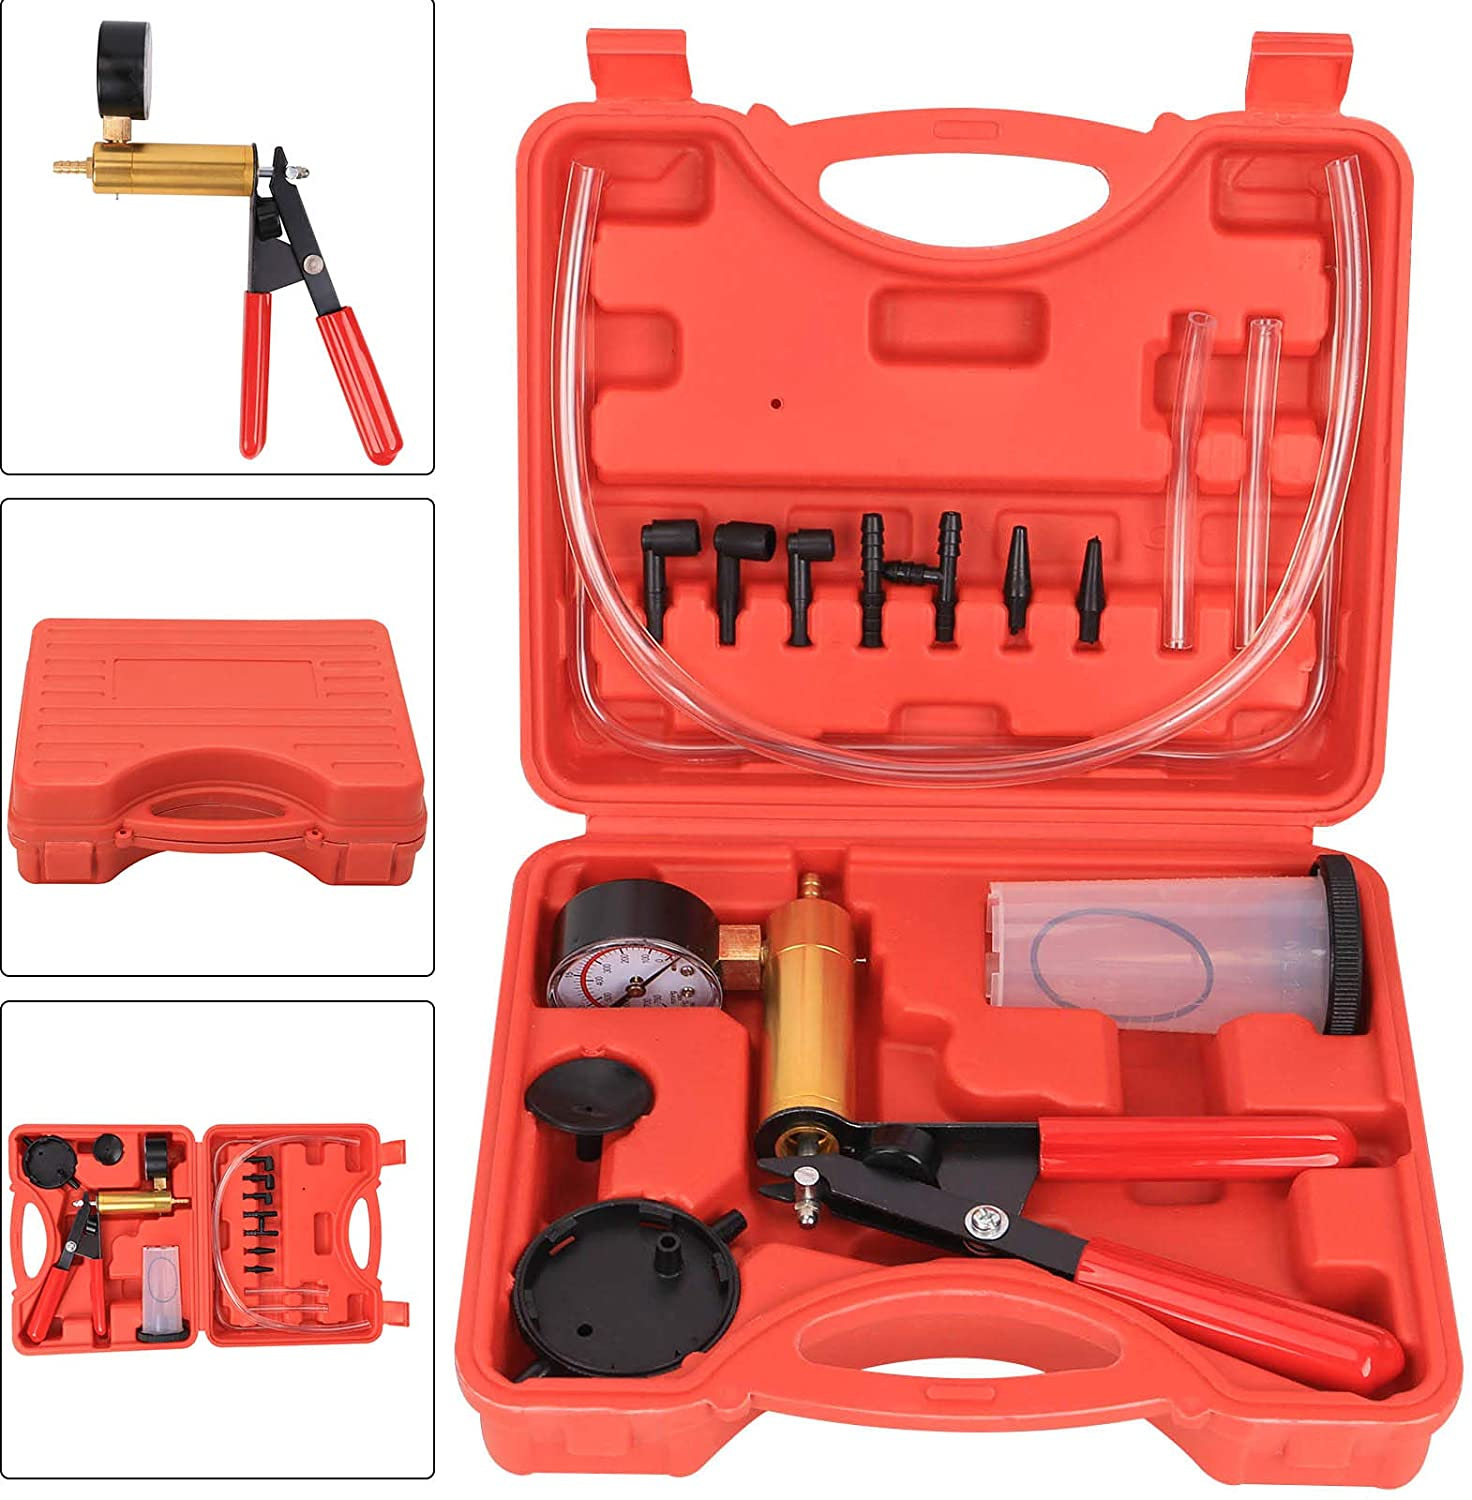 YORKING Tester Set Bleed Kit